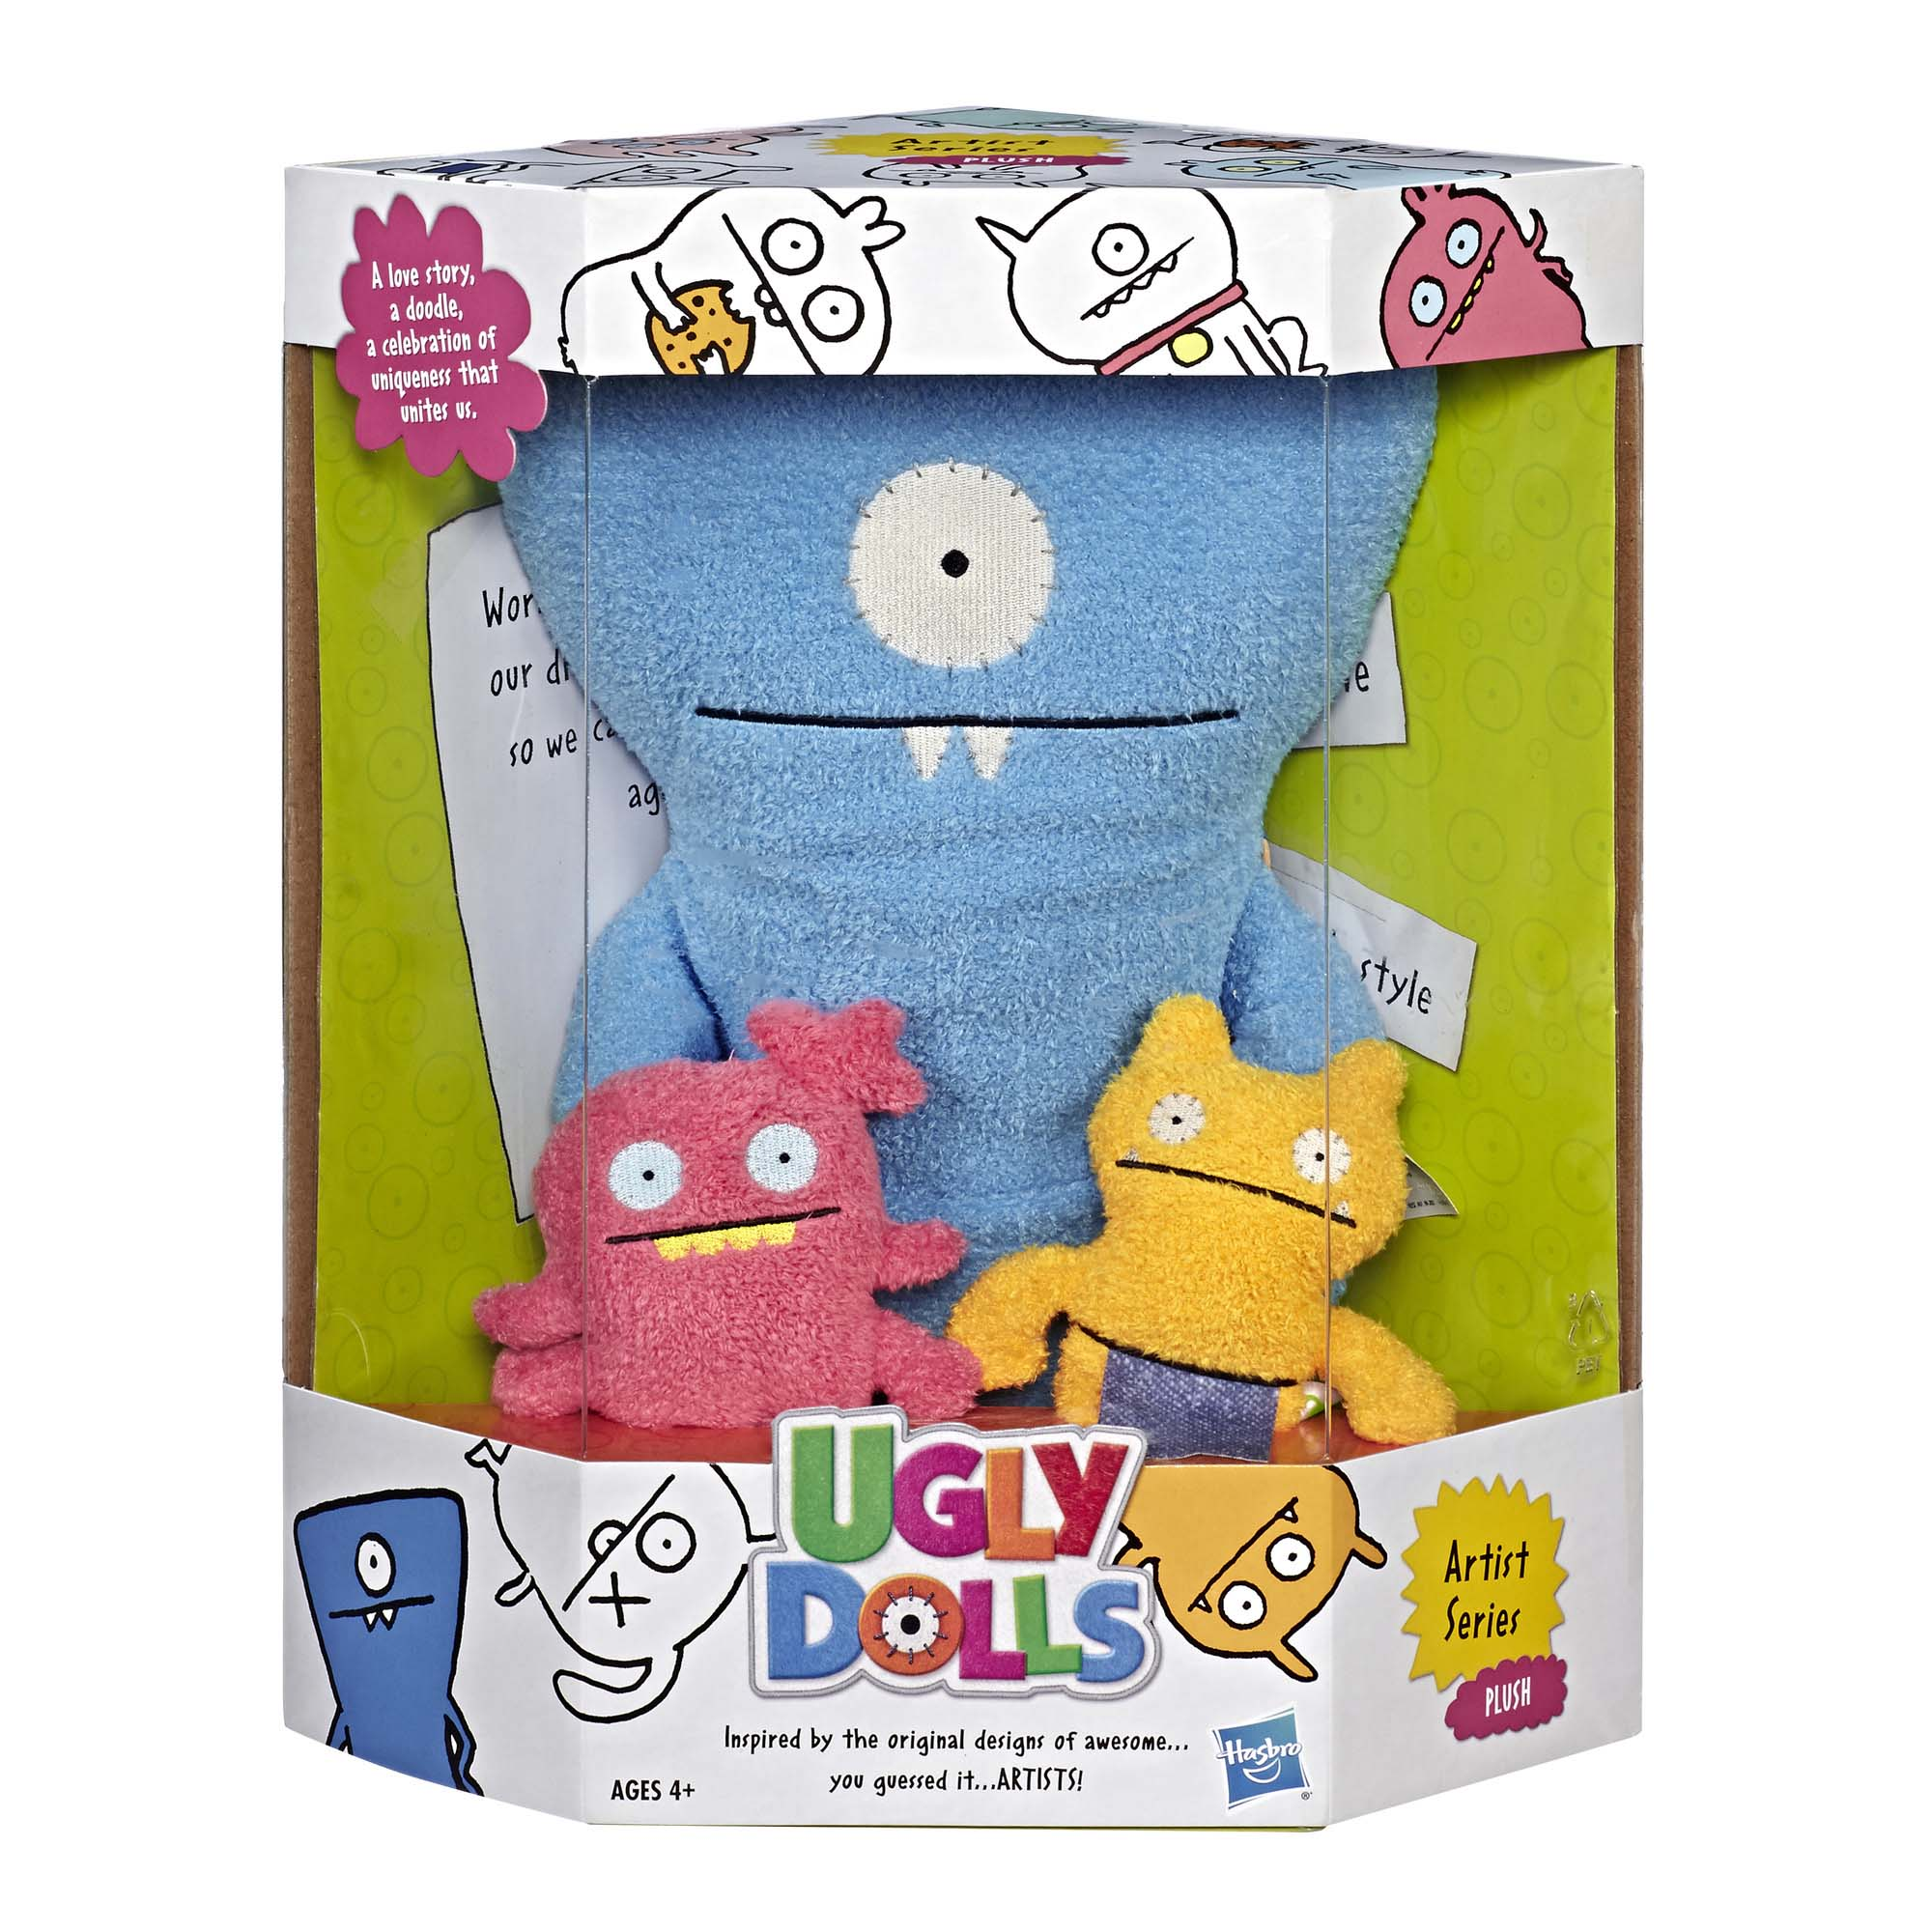 UGLYDOLLS ARTIST SERIES HUG PLUSH CONVENTION EDITION